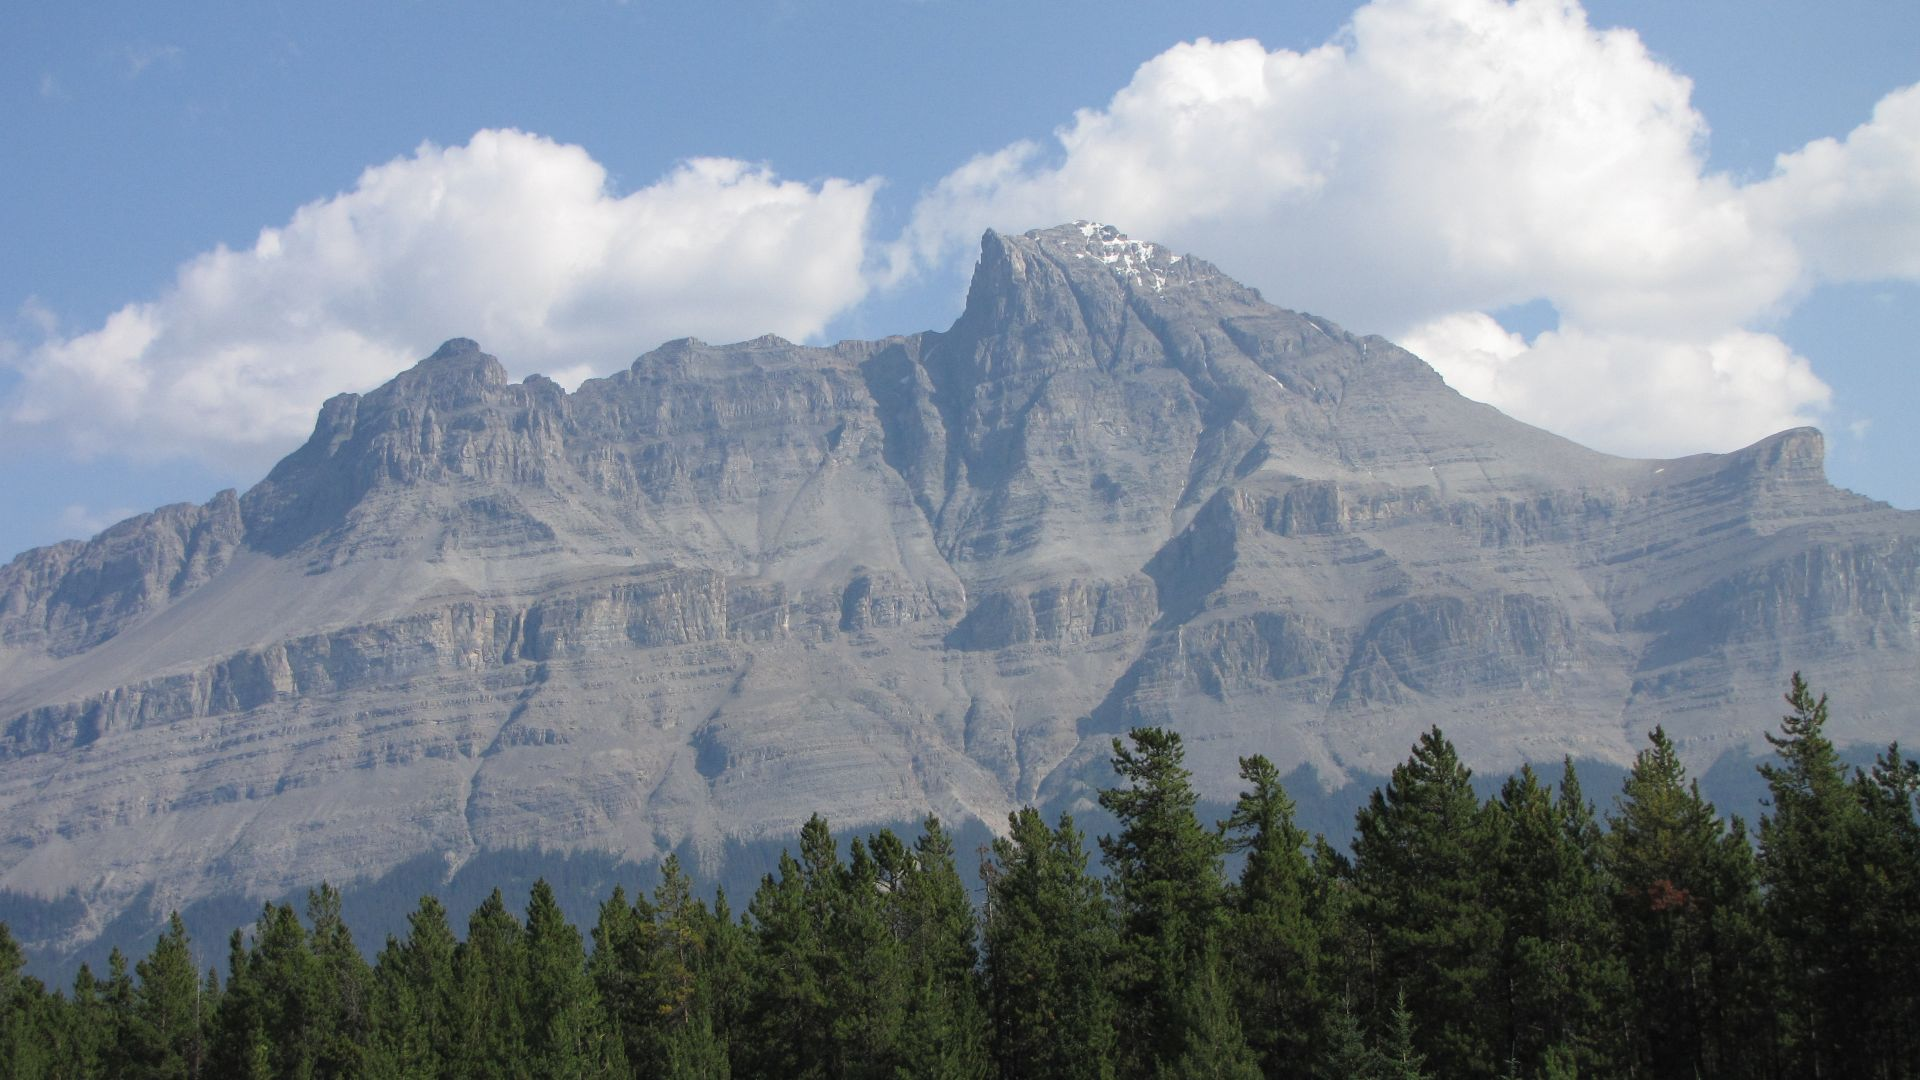 Banff Nat Pk, Alberta, Canada - If you\'re into Geology the rock beds are pretty cool with some nice folds & small thrust (yeah Jon, whatever!)